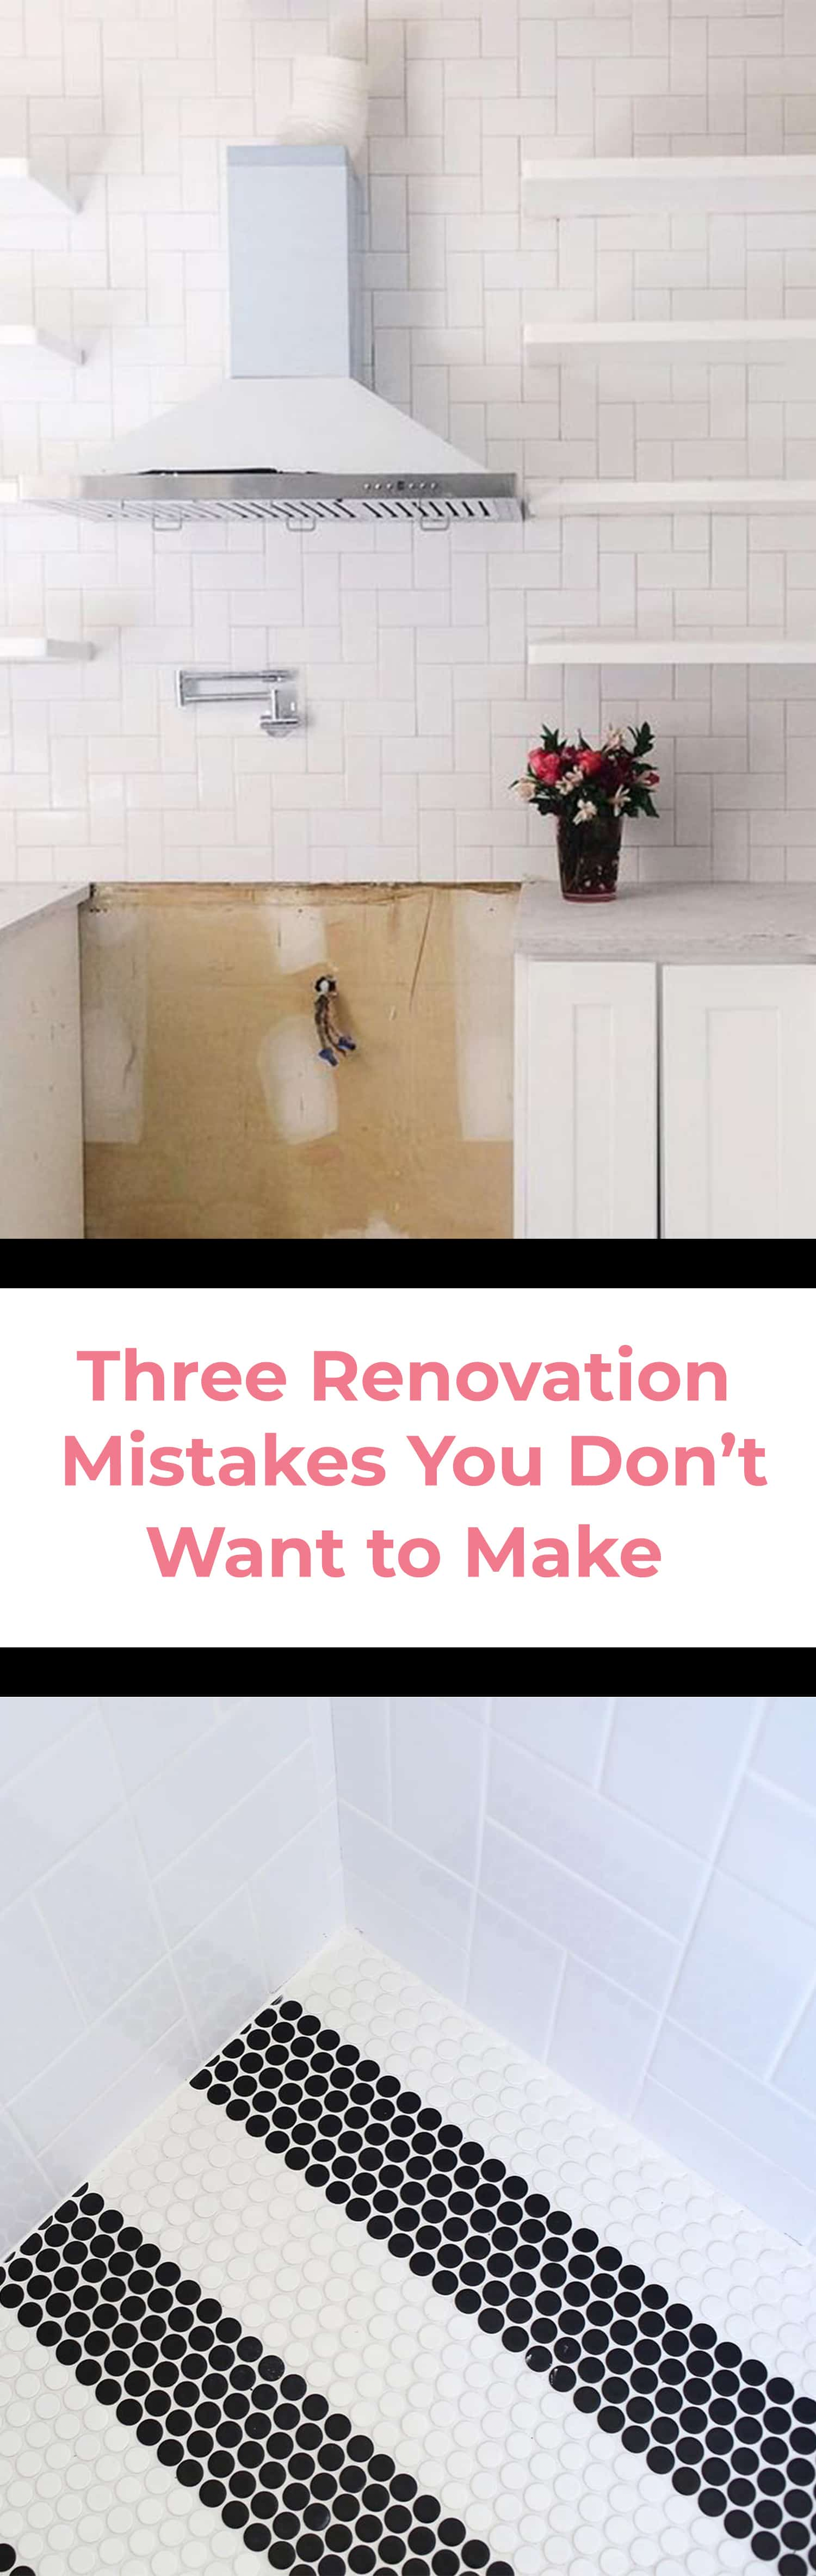 My Renovation Mistakes - A Beautiful Mess on bathroom remodeling project, bathroom remodeling list, bathroom remodeling product, bathroom remodeling showrooms, bathroom remodeling company, bathroom remodeling supplies, bathroom remodeling help,